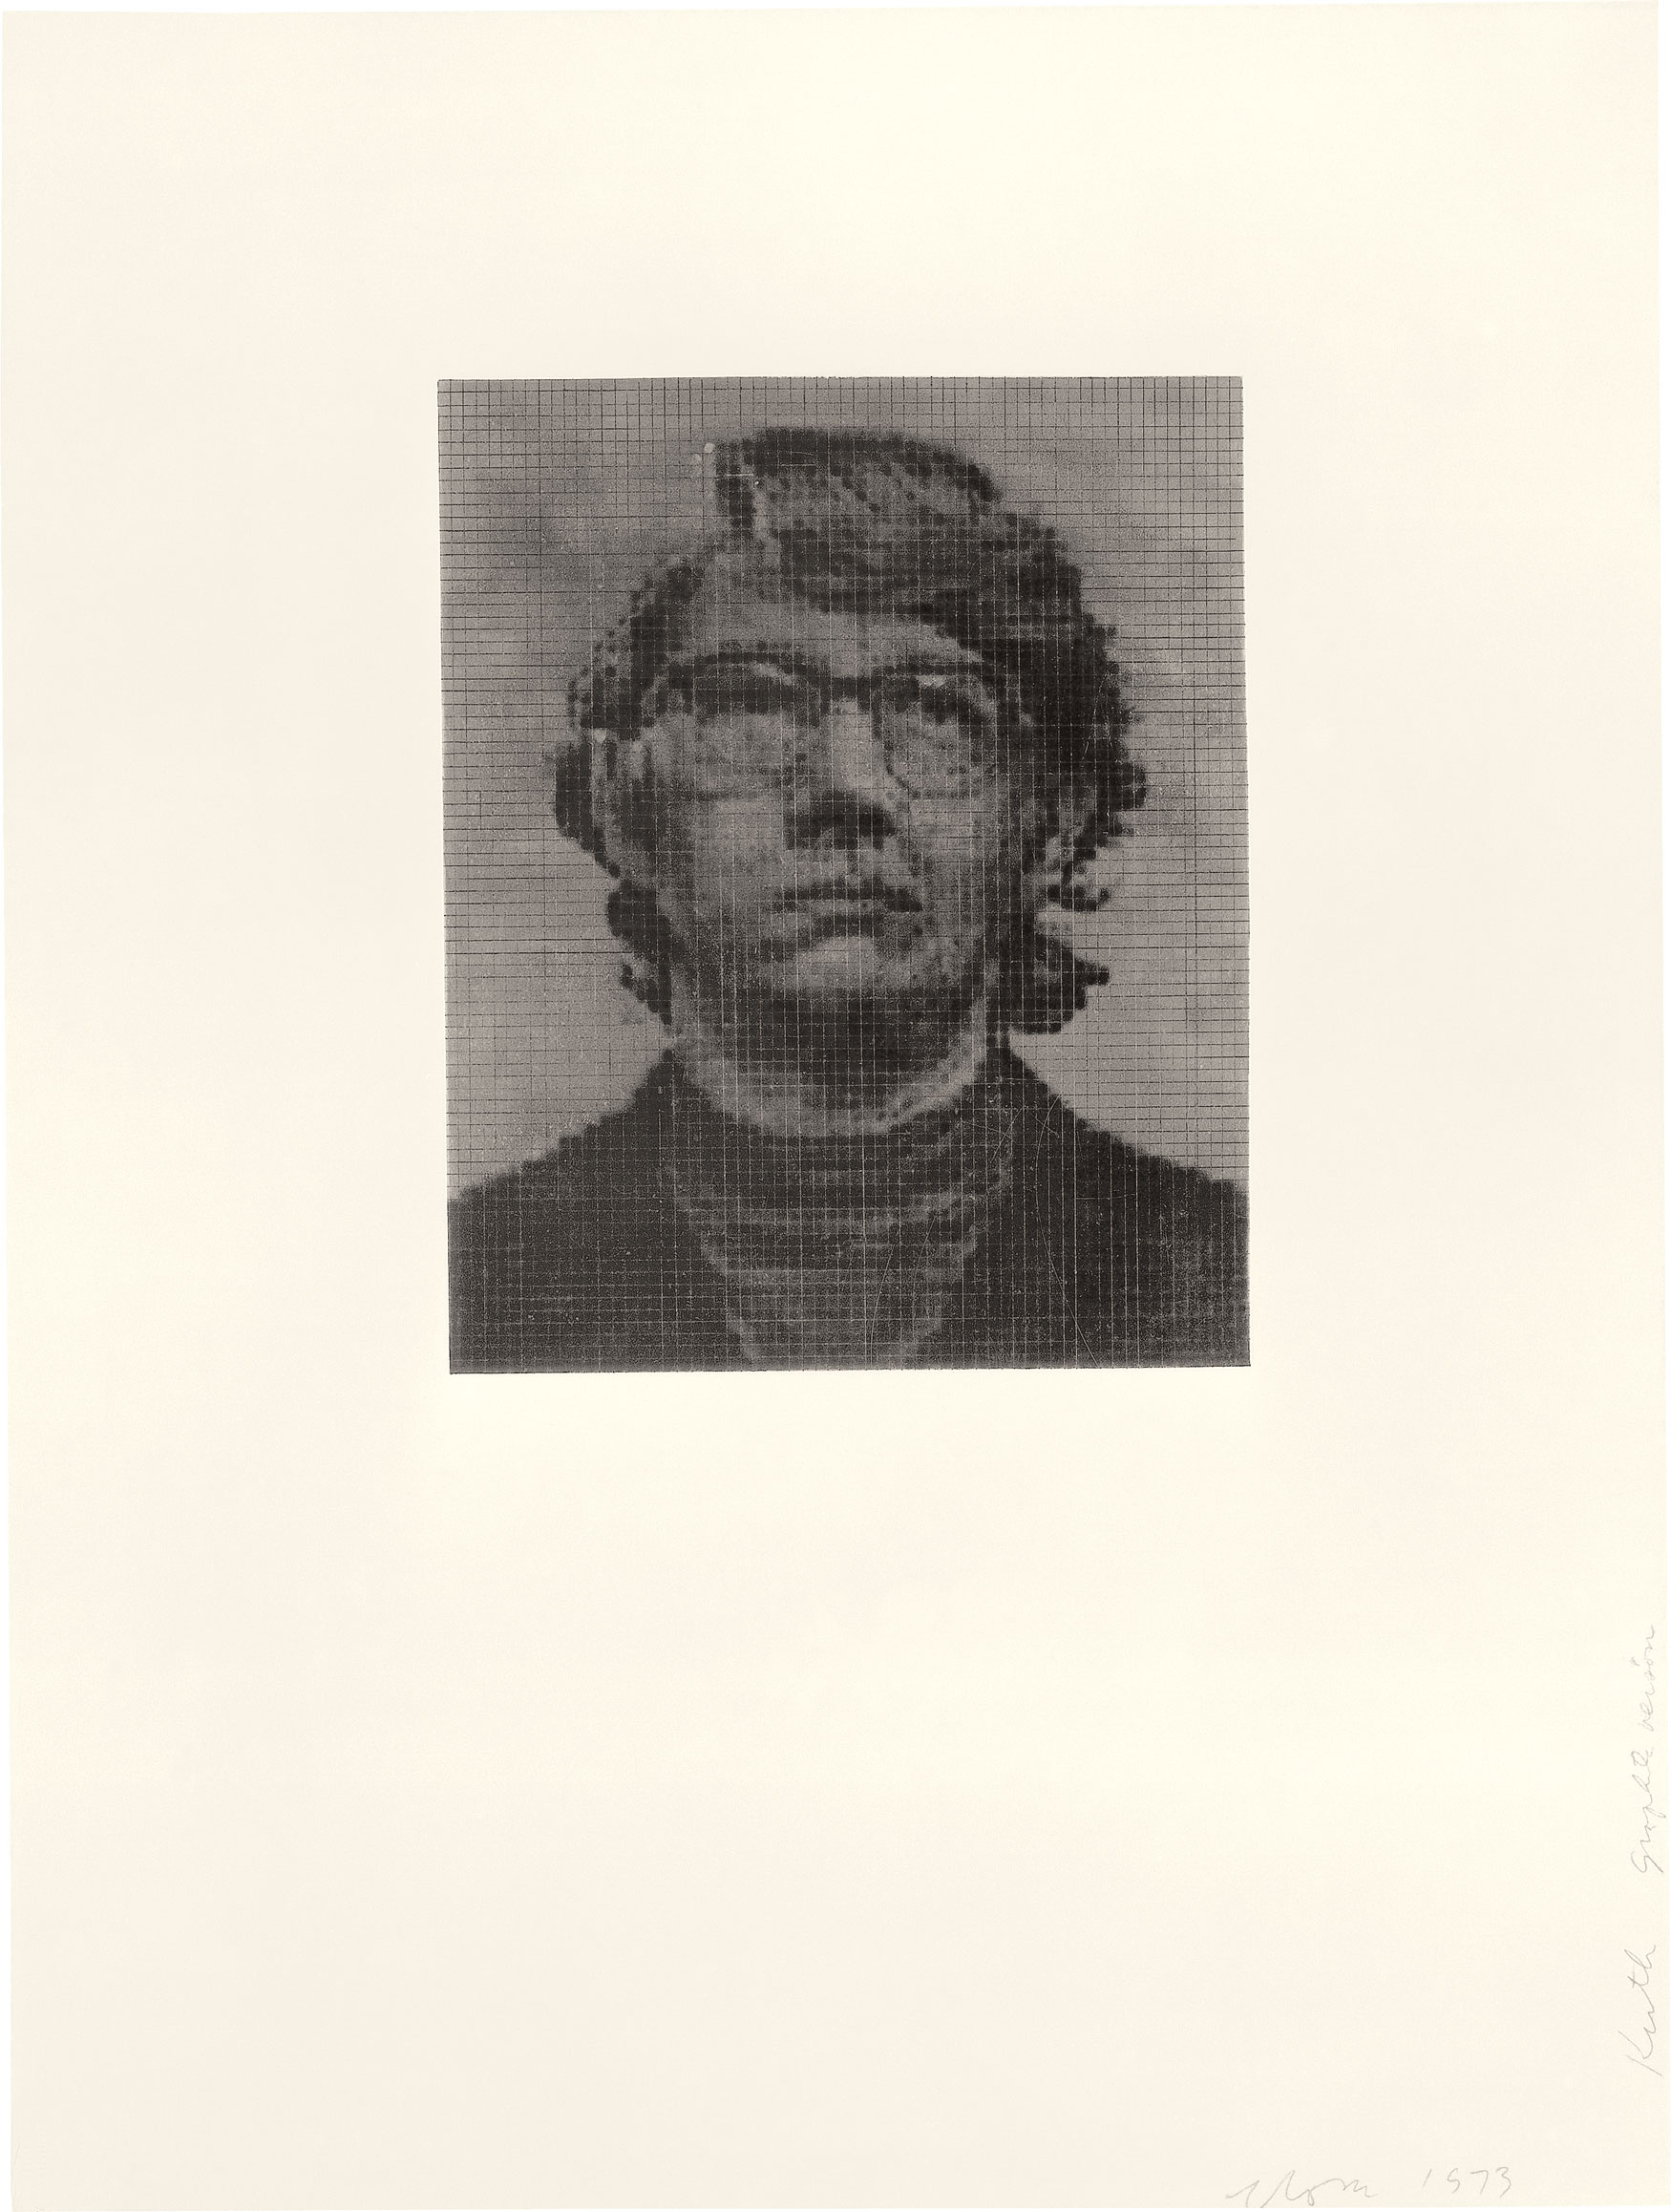 Keith/Three Drawing Set, 1973; ink on graphite ground version (Photo by Ellen Page Wilson)